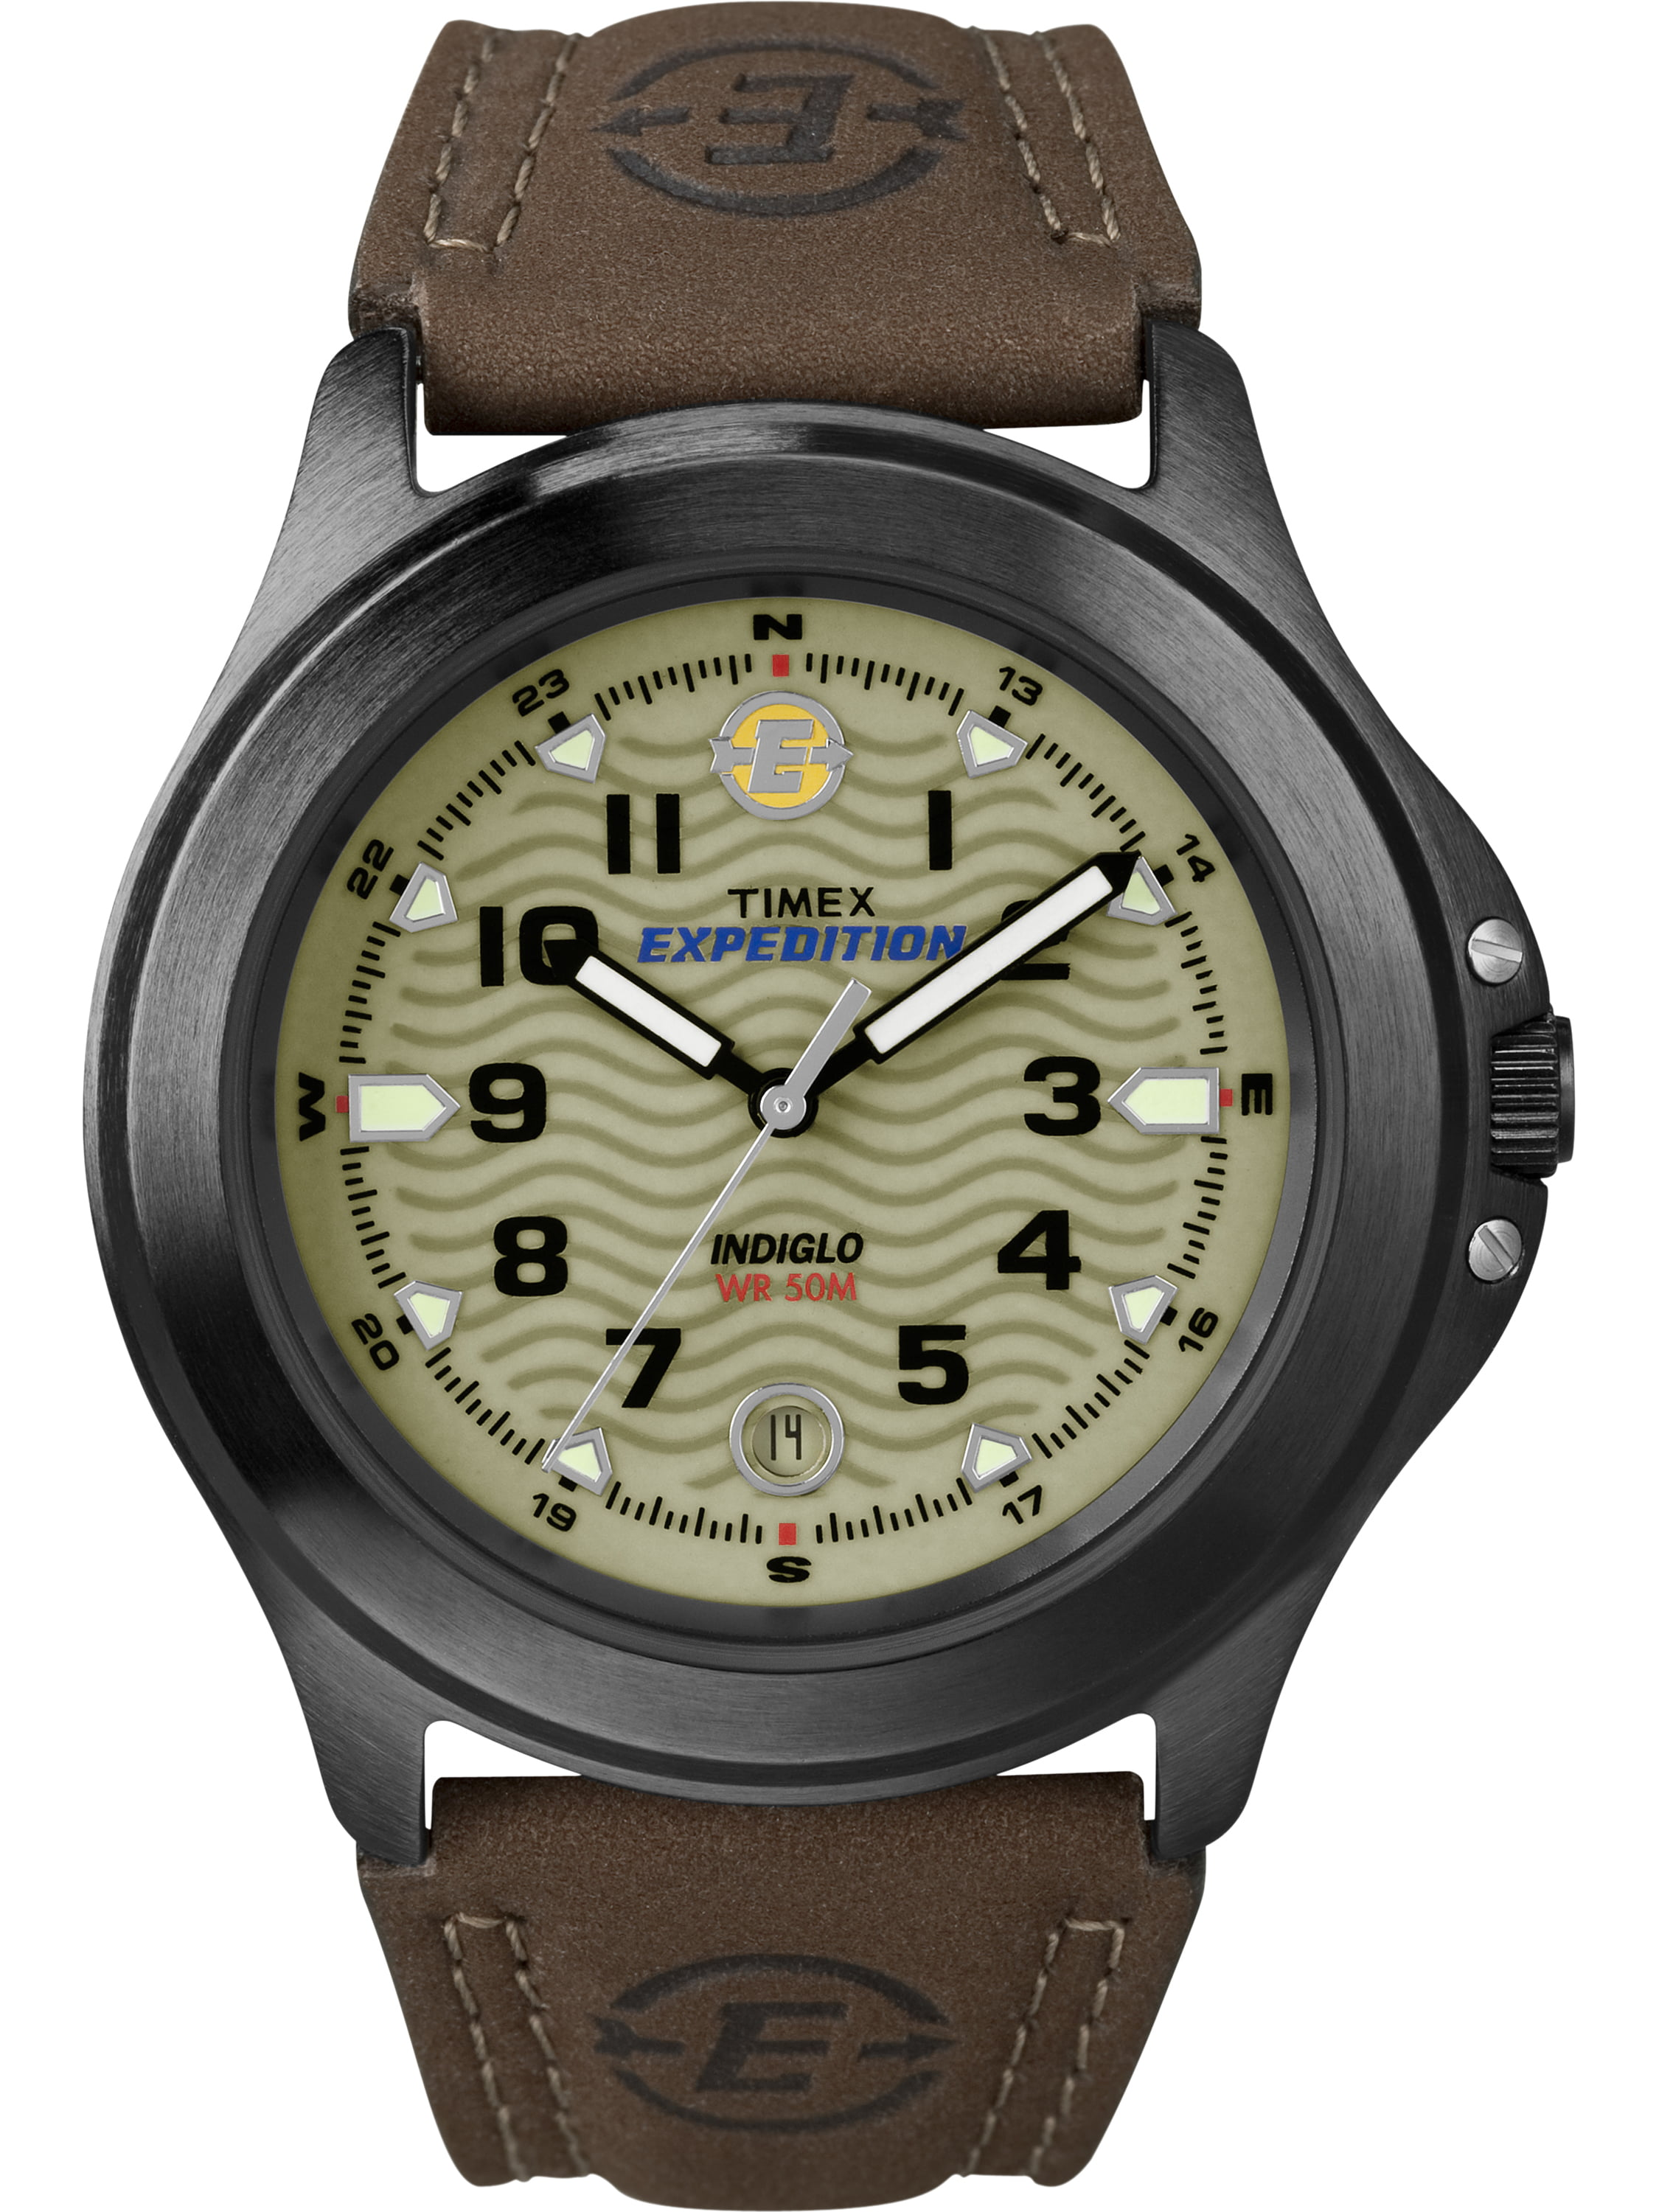 Timex Men's Expedition Metal Field Watch, Brown Leather Strap by Timex